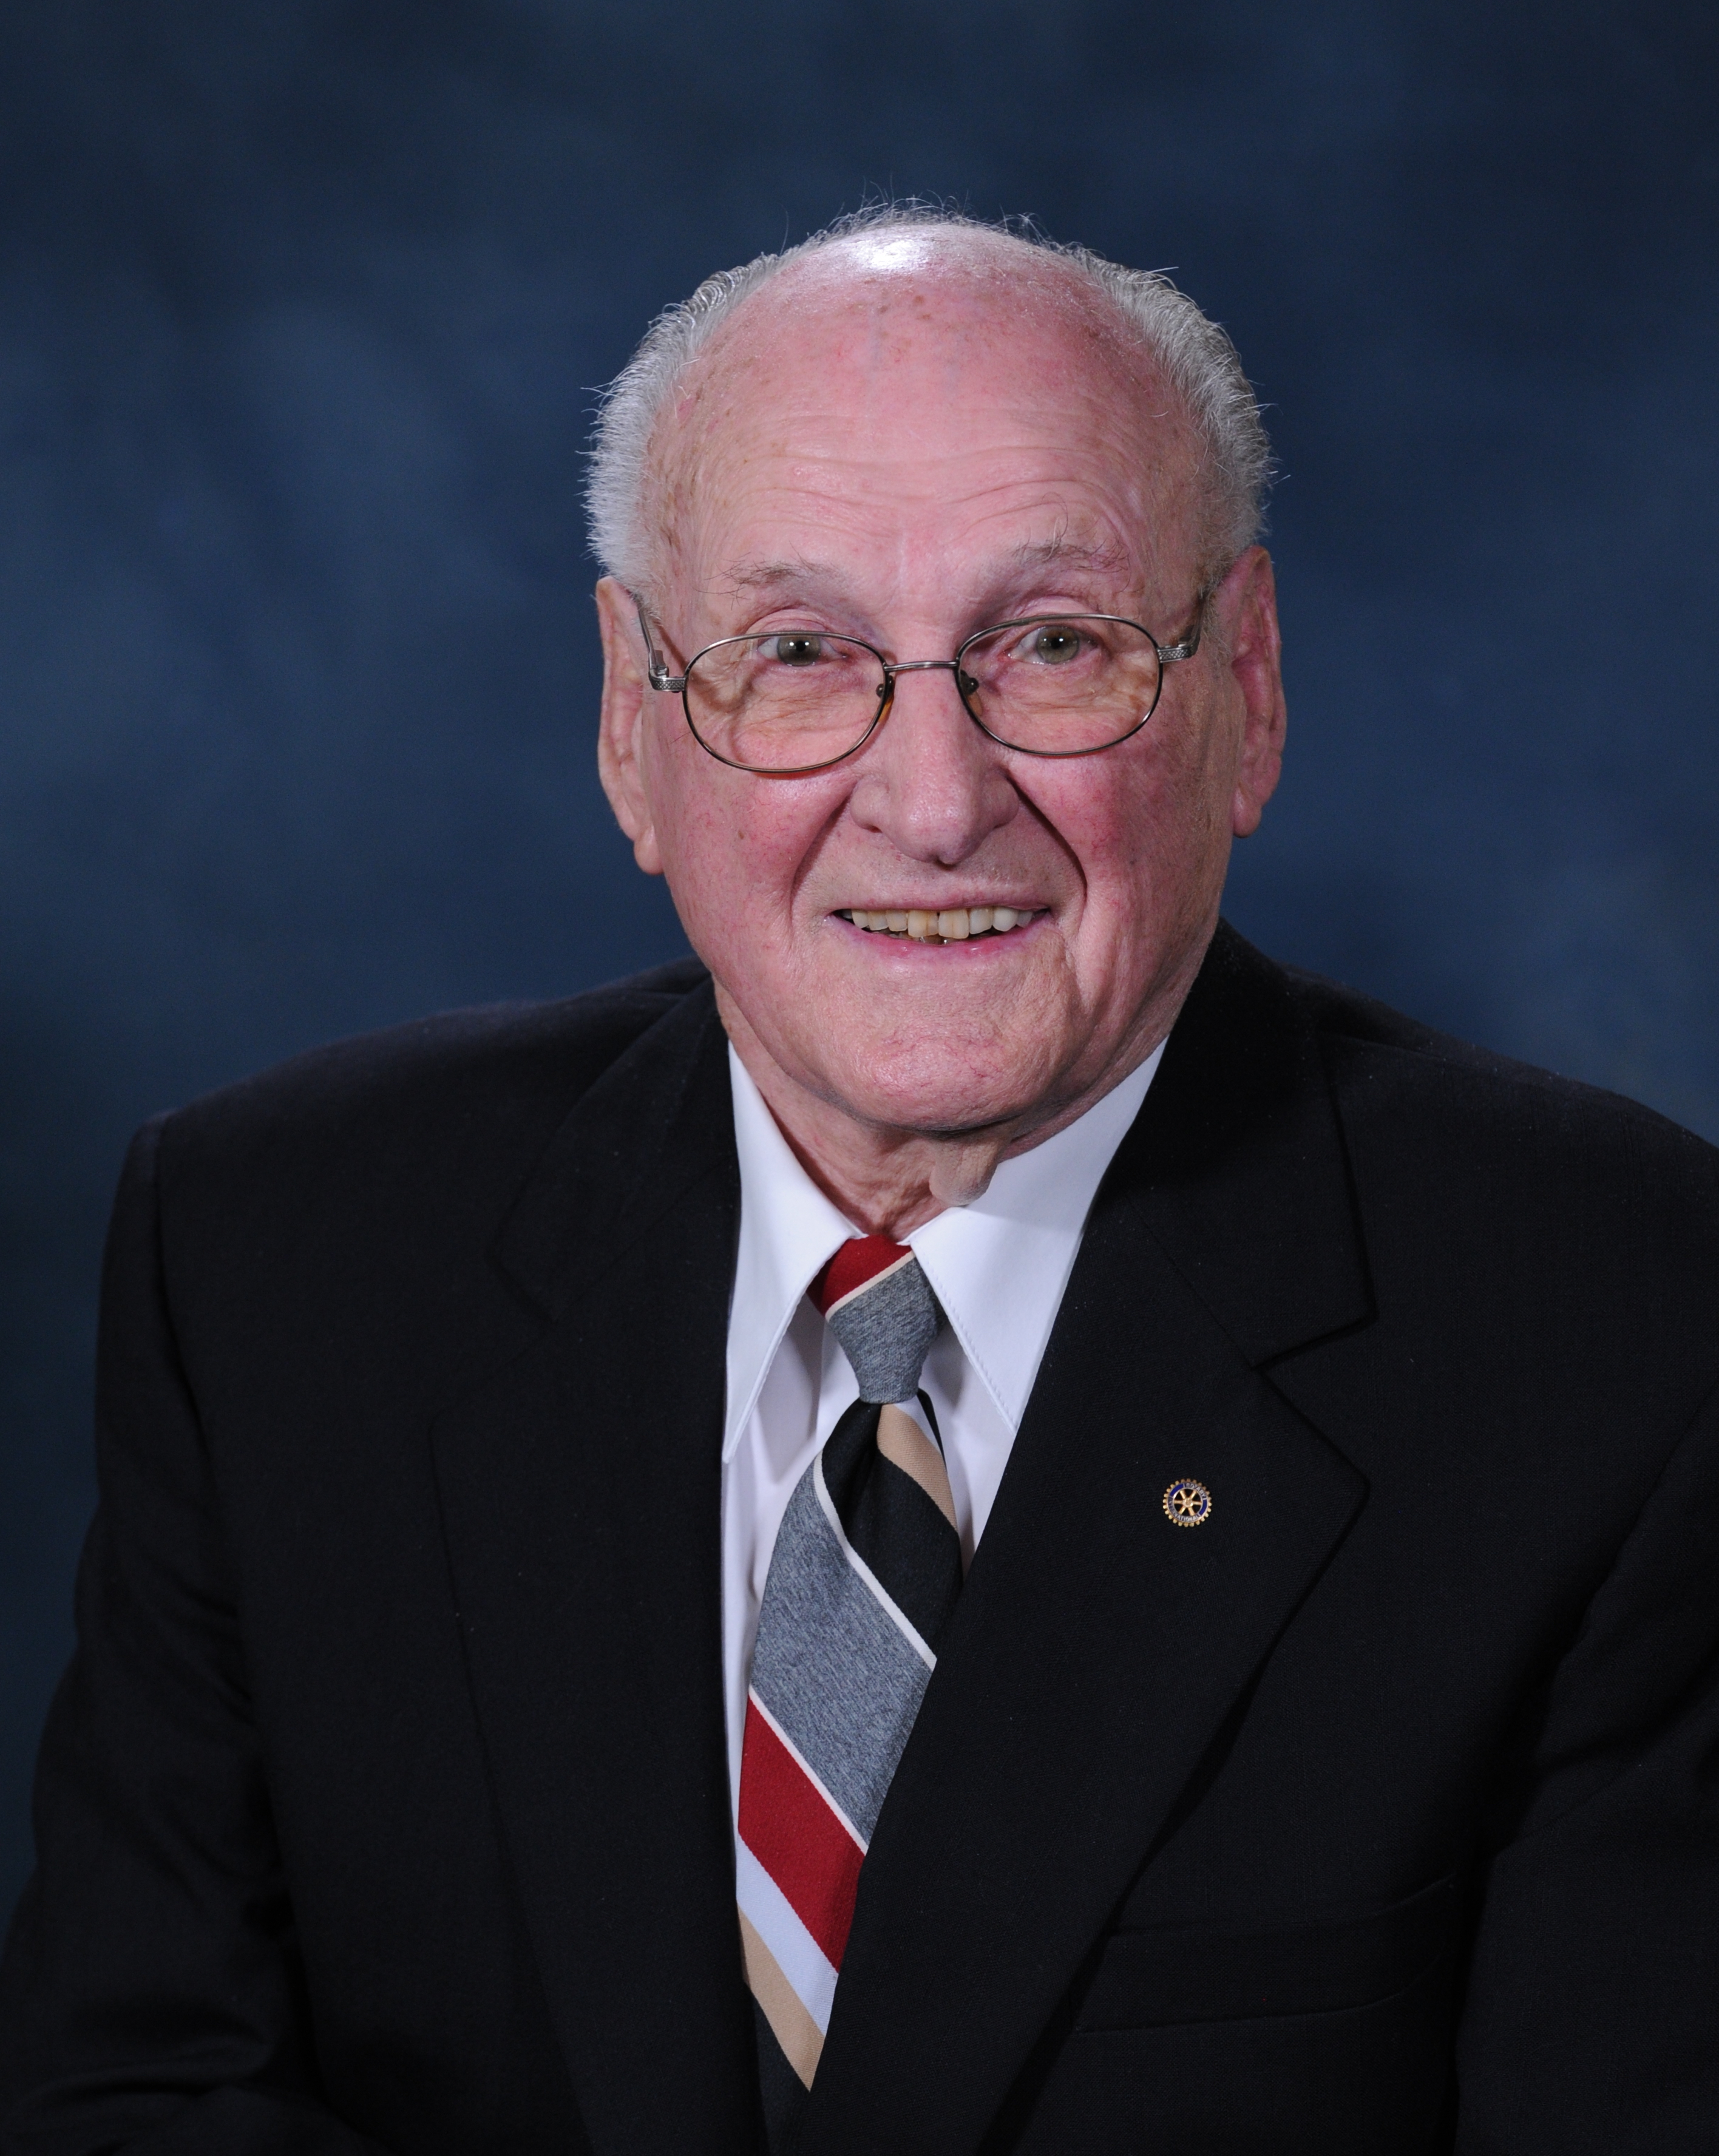 On September 22, 2017, the UGA College of Agricultural and Environmental Sciences will induct poultryman Bill Baisley into the Georgia Agricultural Hall of Fame.